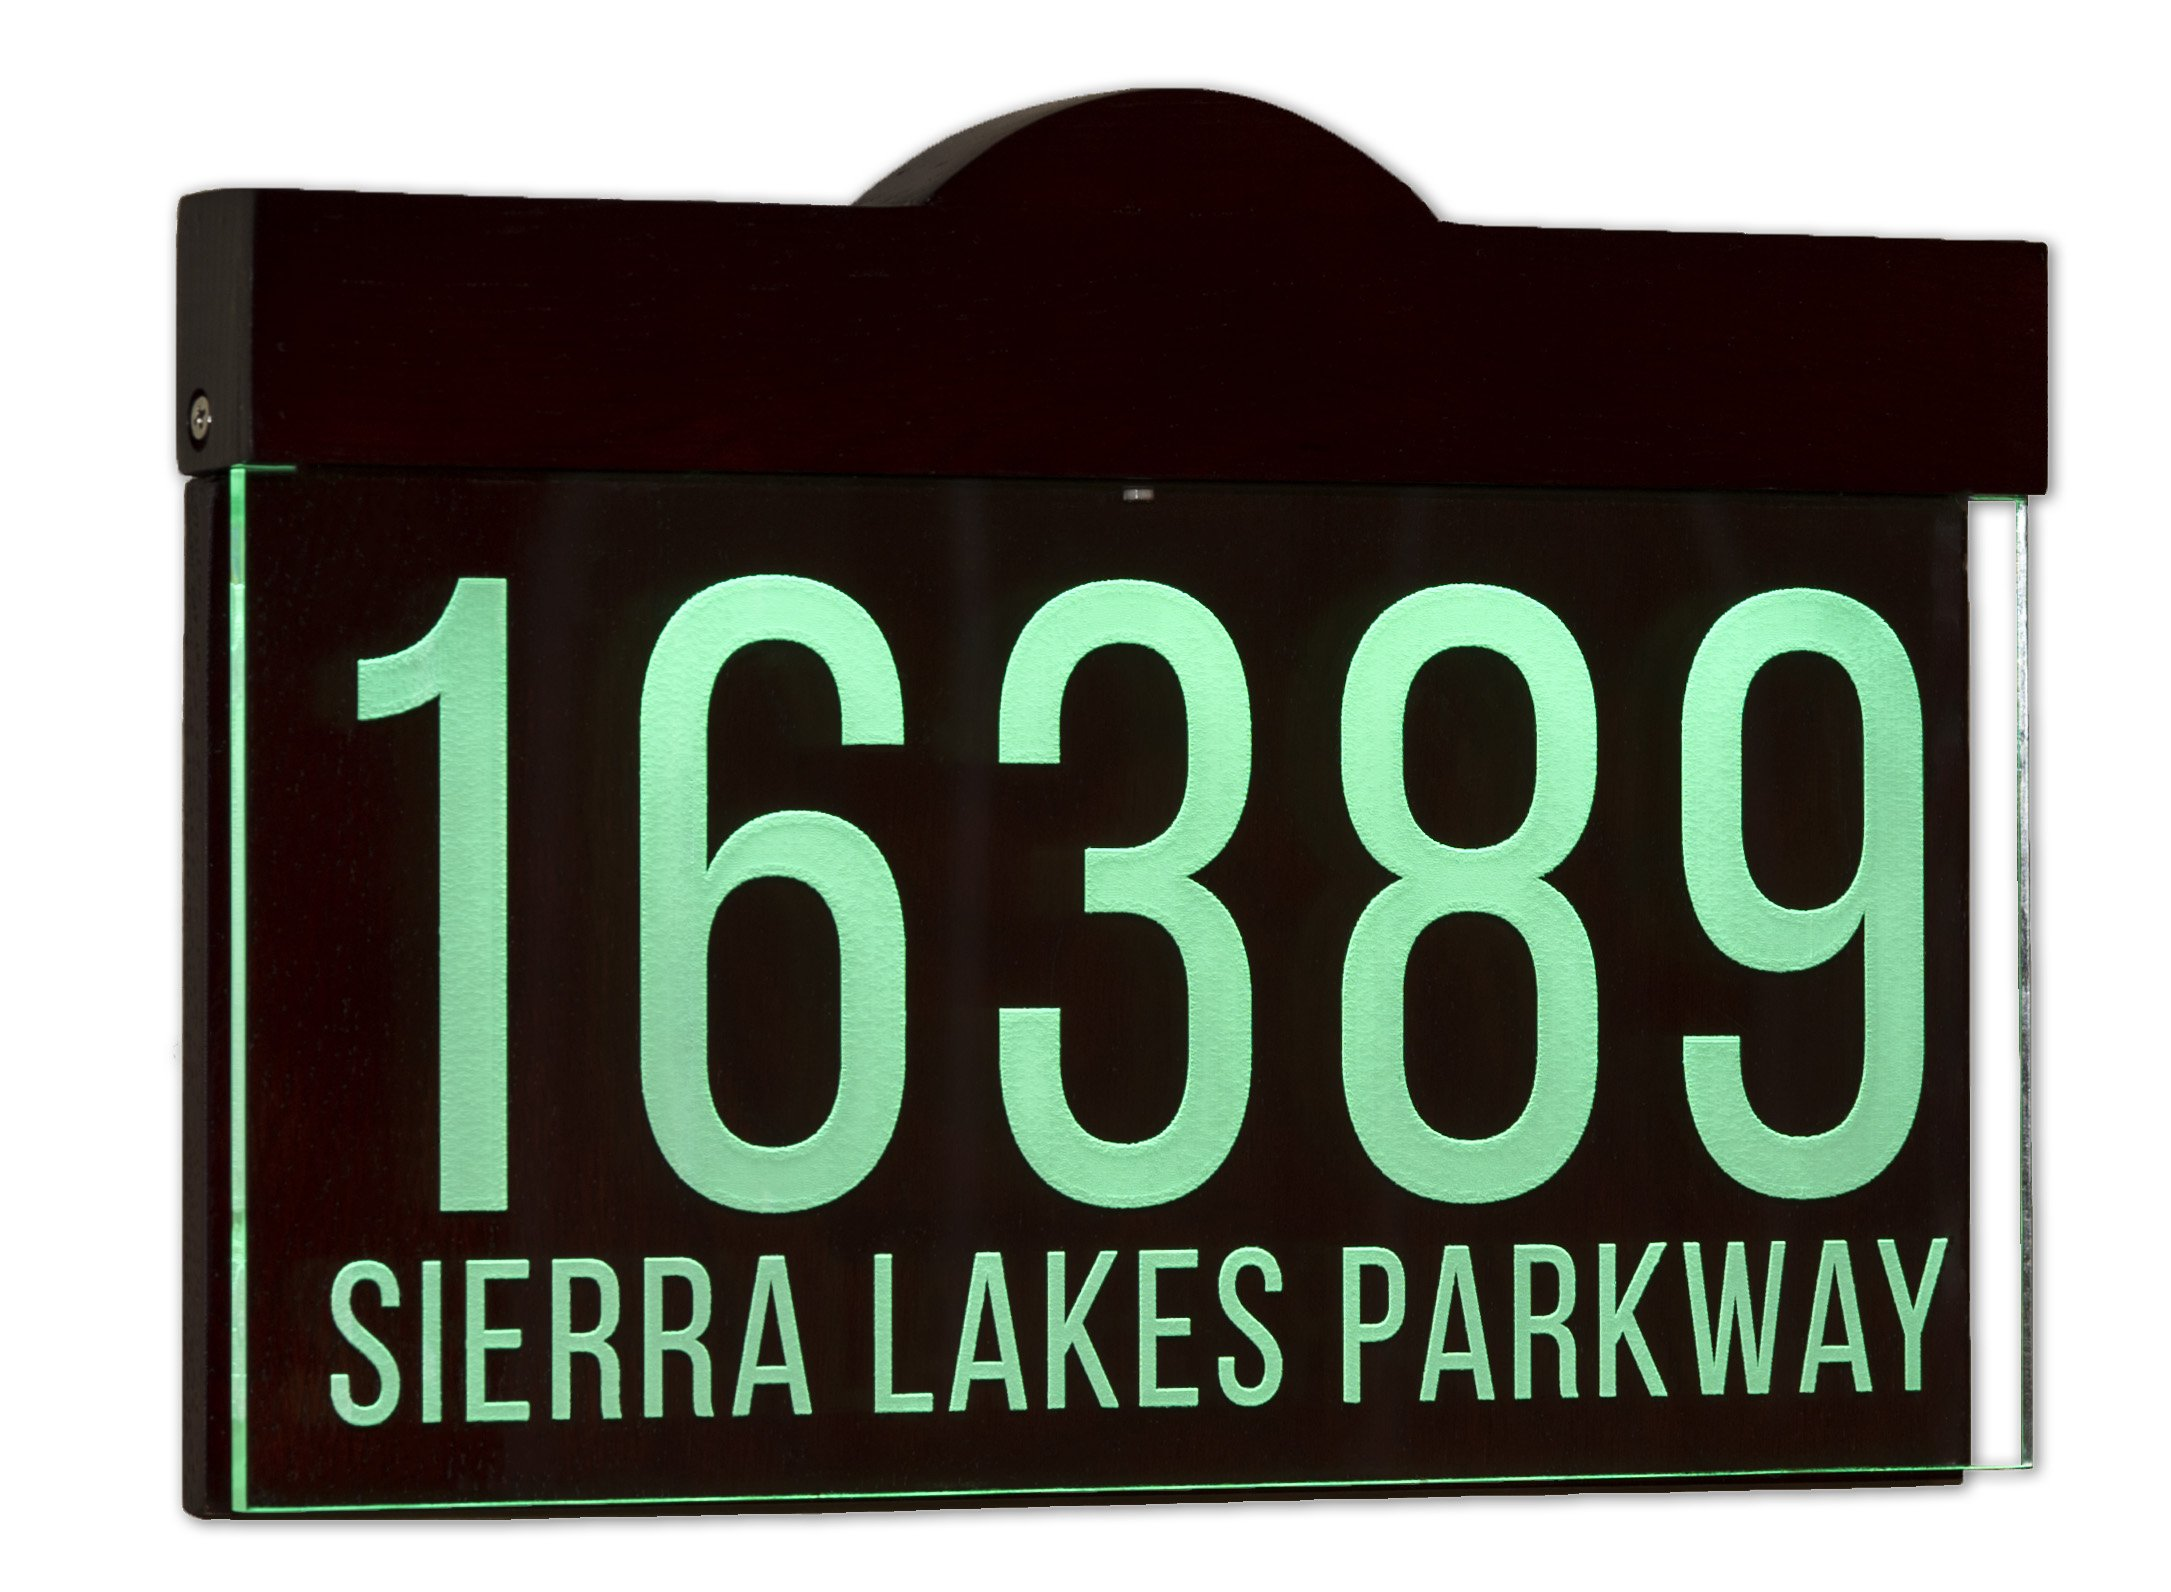 12 16 V Ac Auto On Off Custom Illuminated House Numbers Address Sign Address Plaque Lighted With Led Laser Engraved On Acrylic Sign With Wood Frame Garden Outdoor